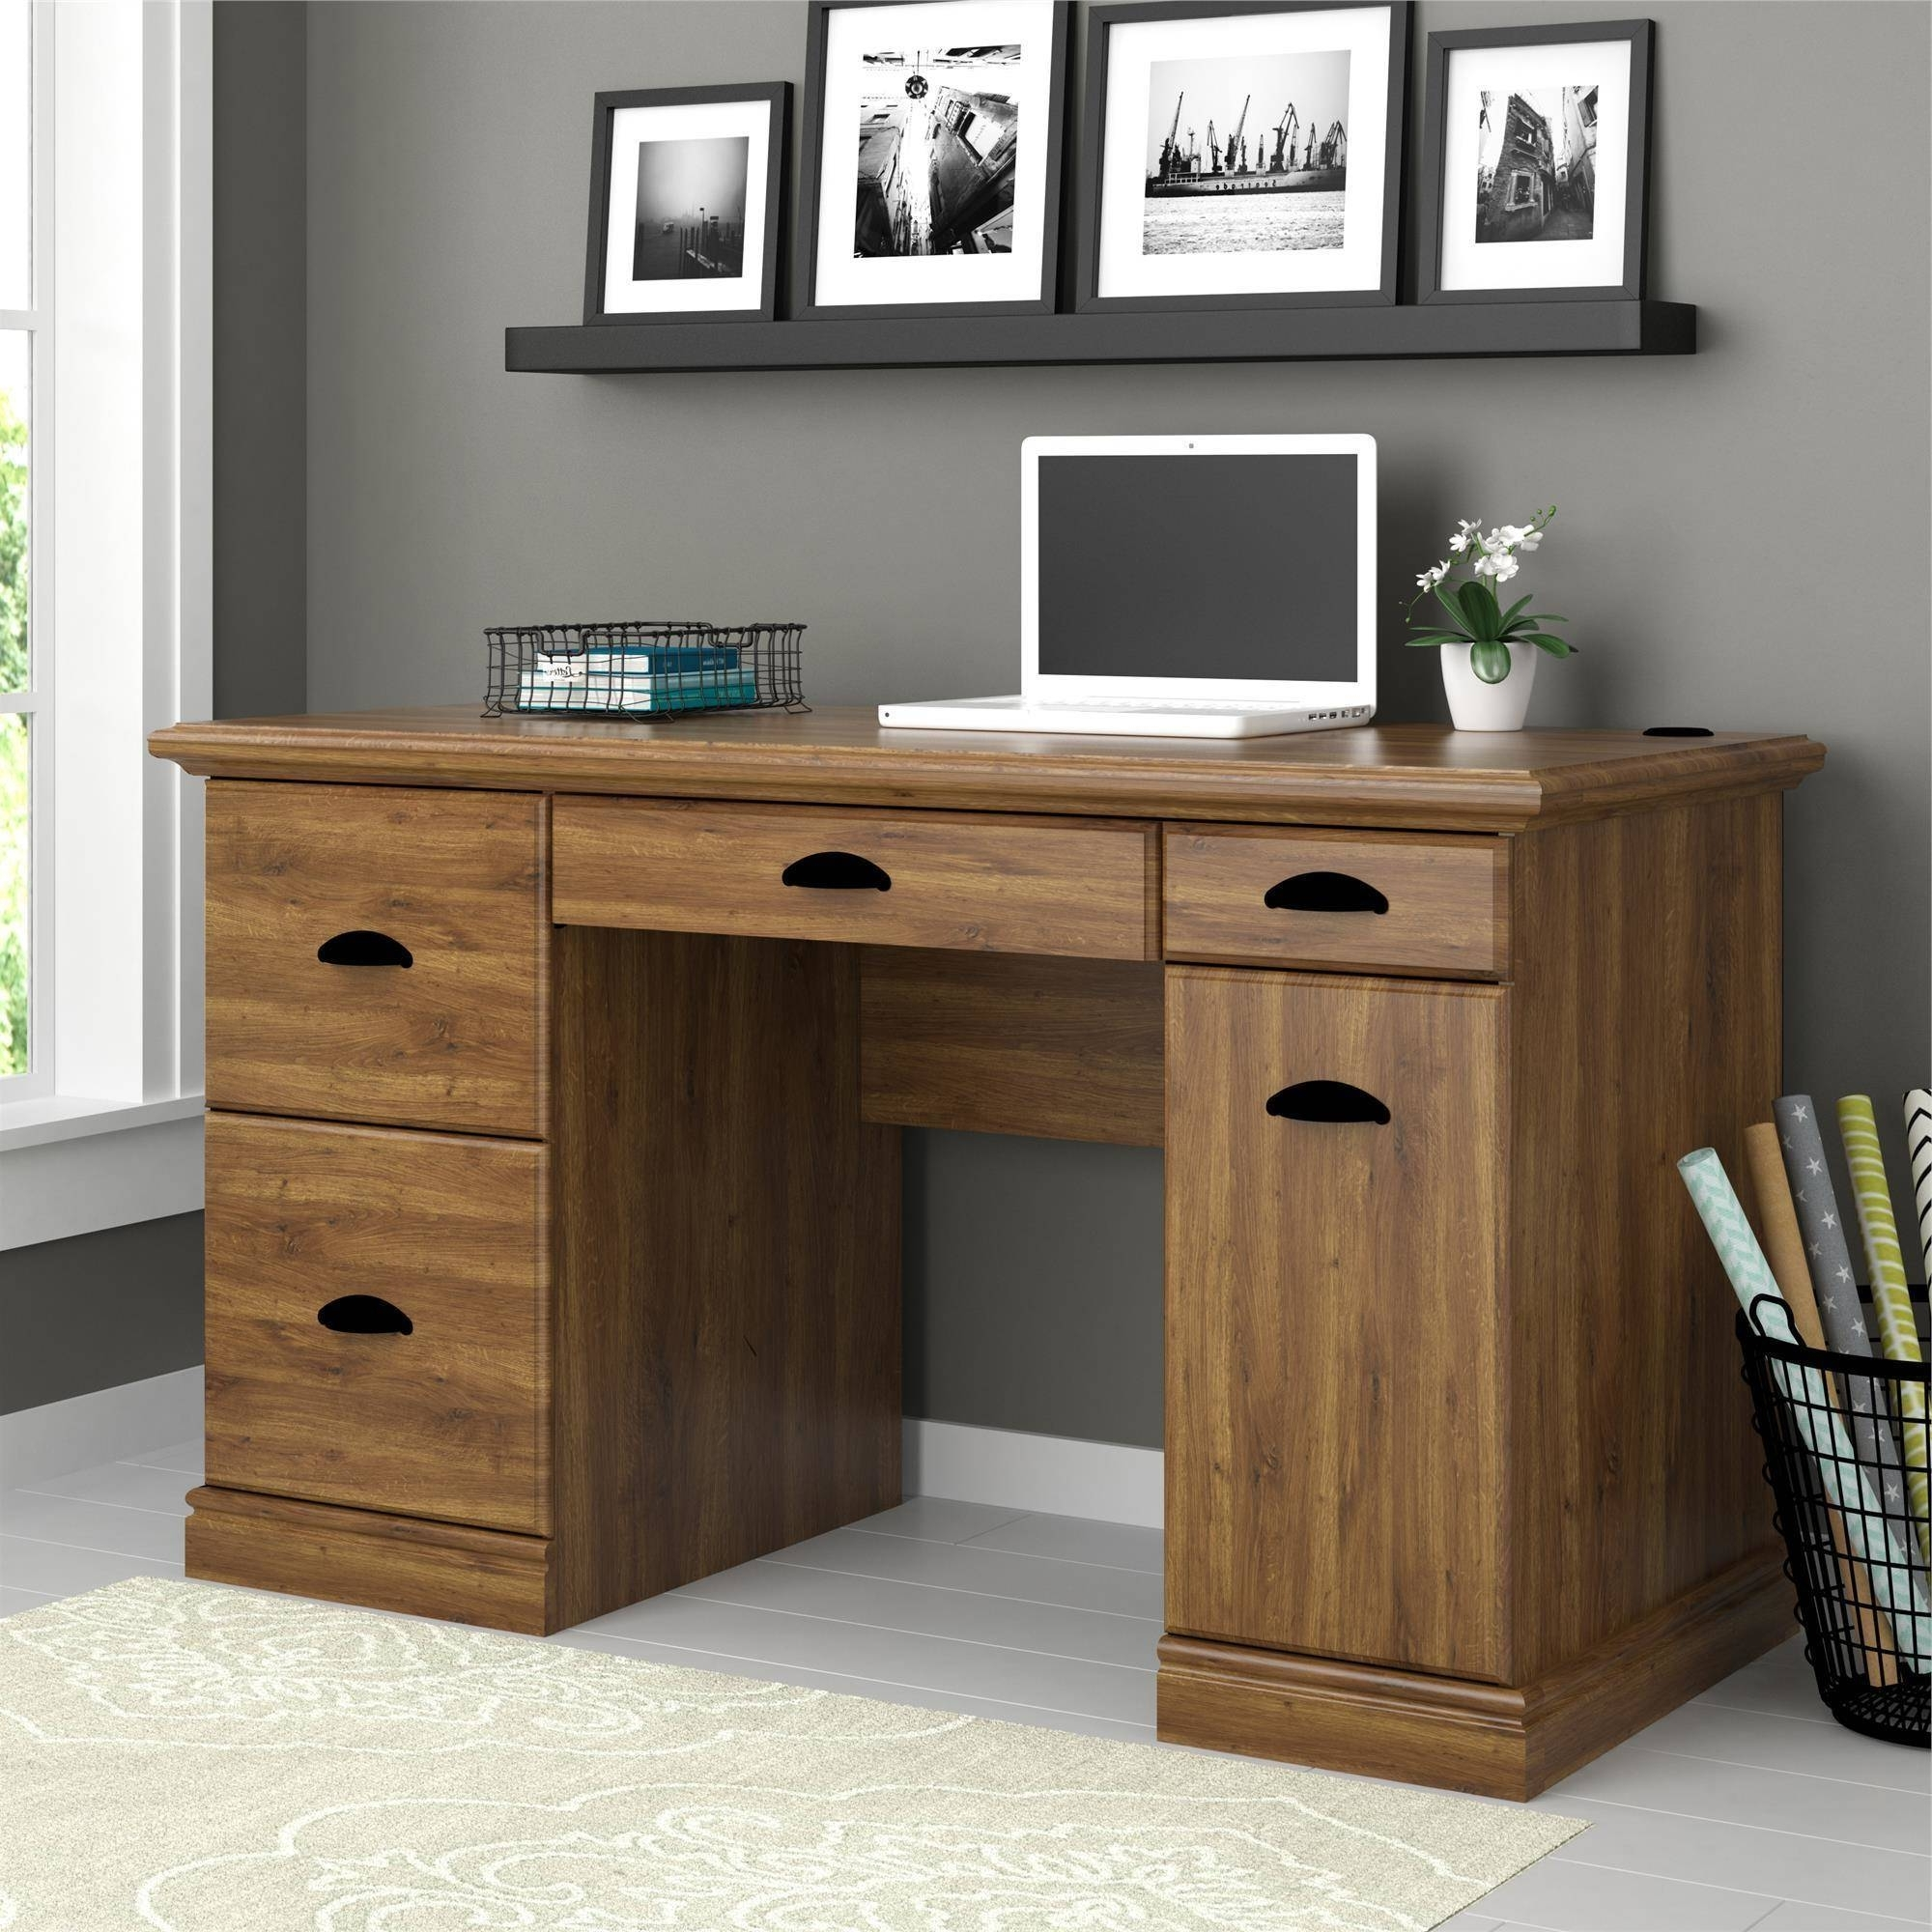 Latest Better Homes And Gardens Computer Desk, Brown Oak – Walmart For Computer Desks With Shelves (View 13 of 20)